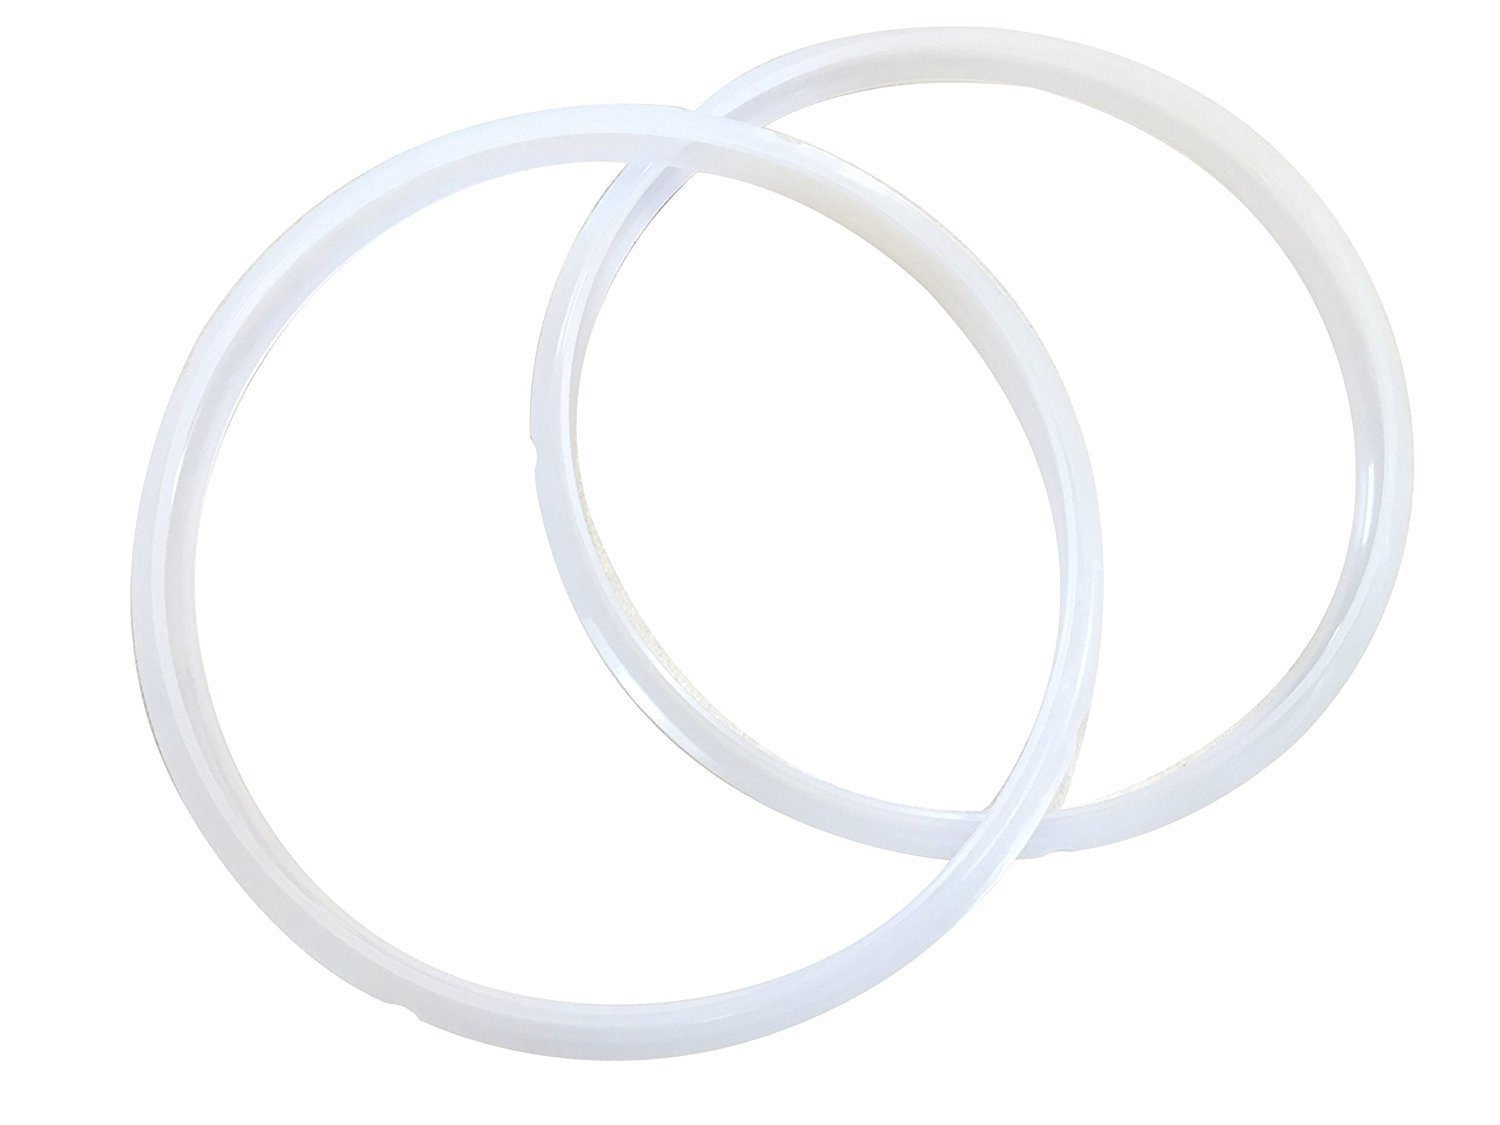 TWIN PACK: Two Replacement Sealing Rings Compatible with Cuisinart Pressure Cooker Part CPC-SR600 by GJS Gourmet